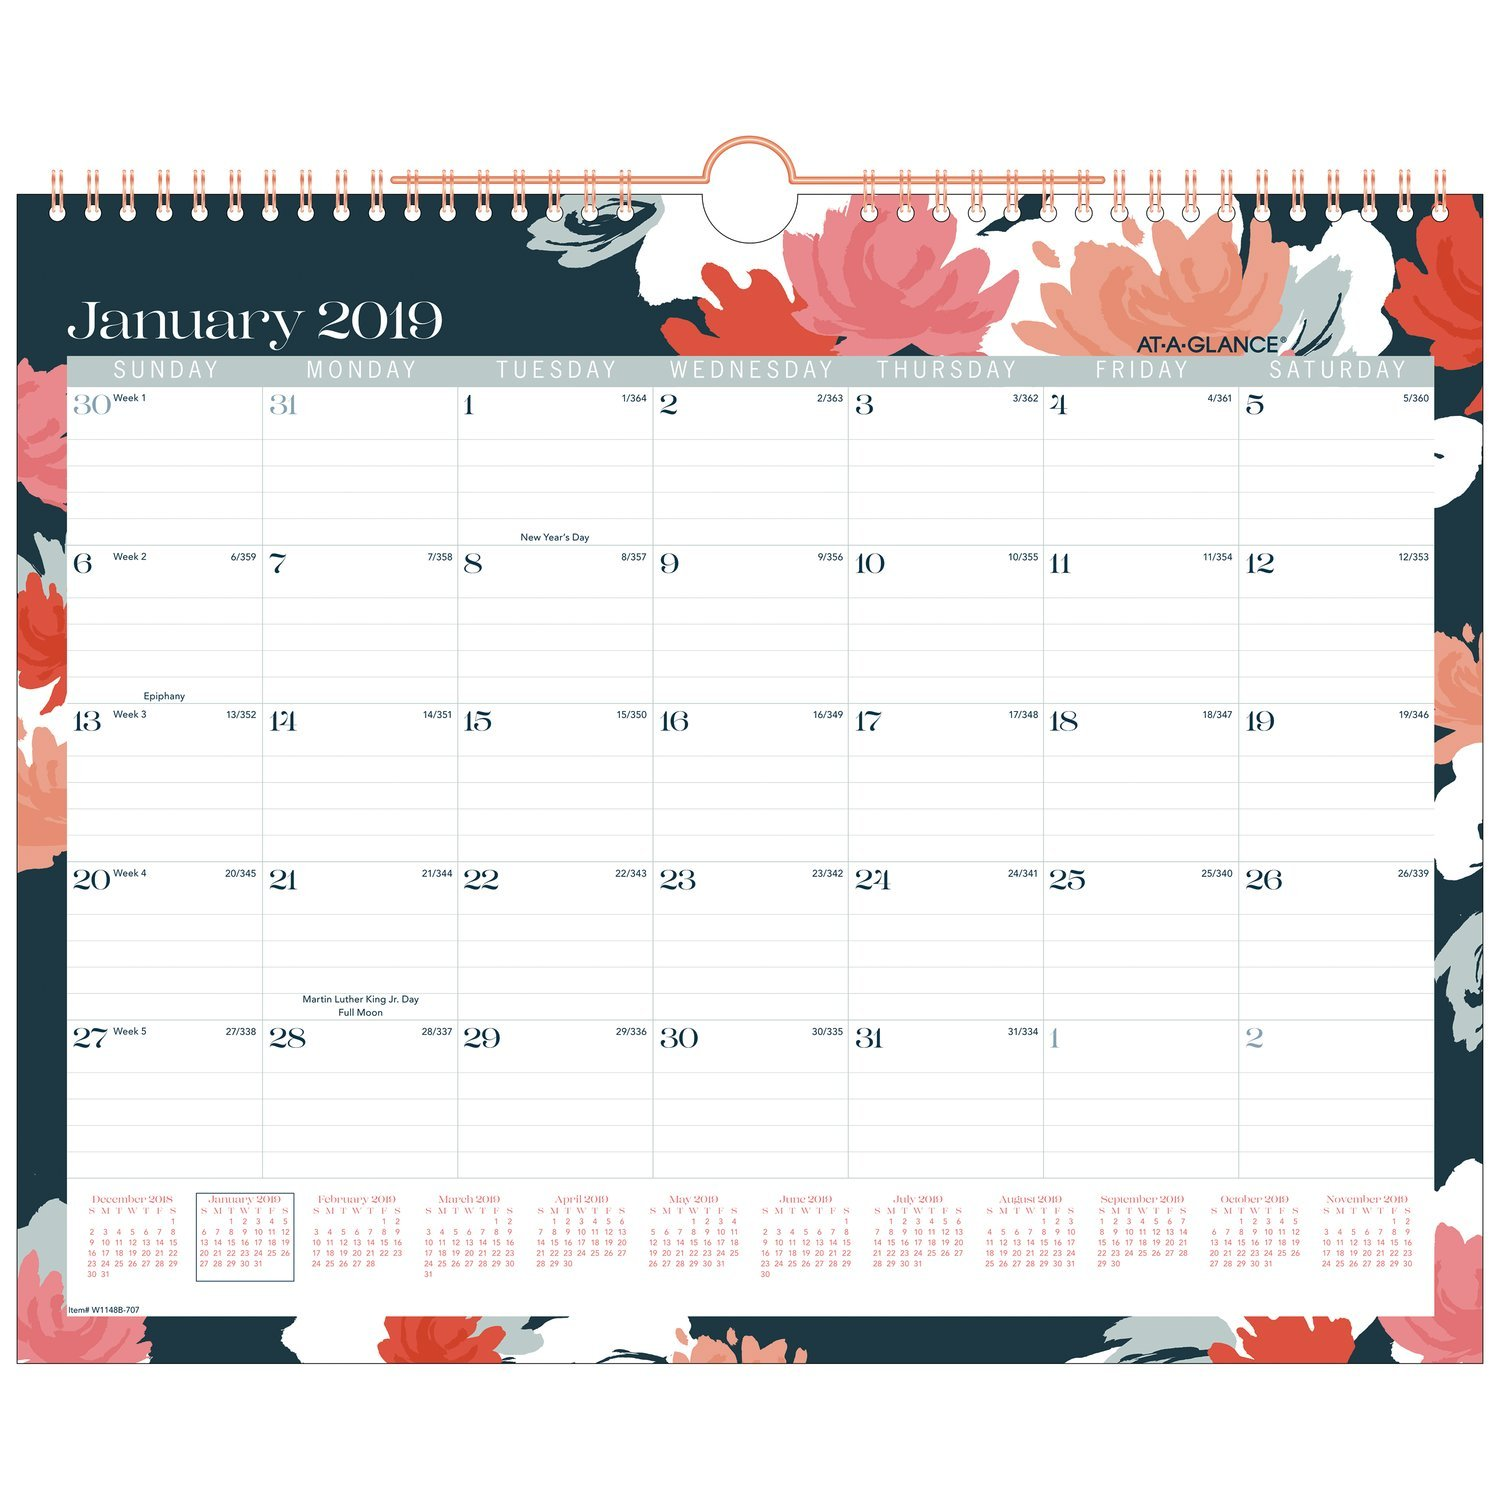 AT-A-GLANCE Monthly Wall Calendar, January 2019 - December 2019, Large Size, Wirebound, Badge Floral (W1148B-707)